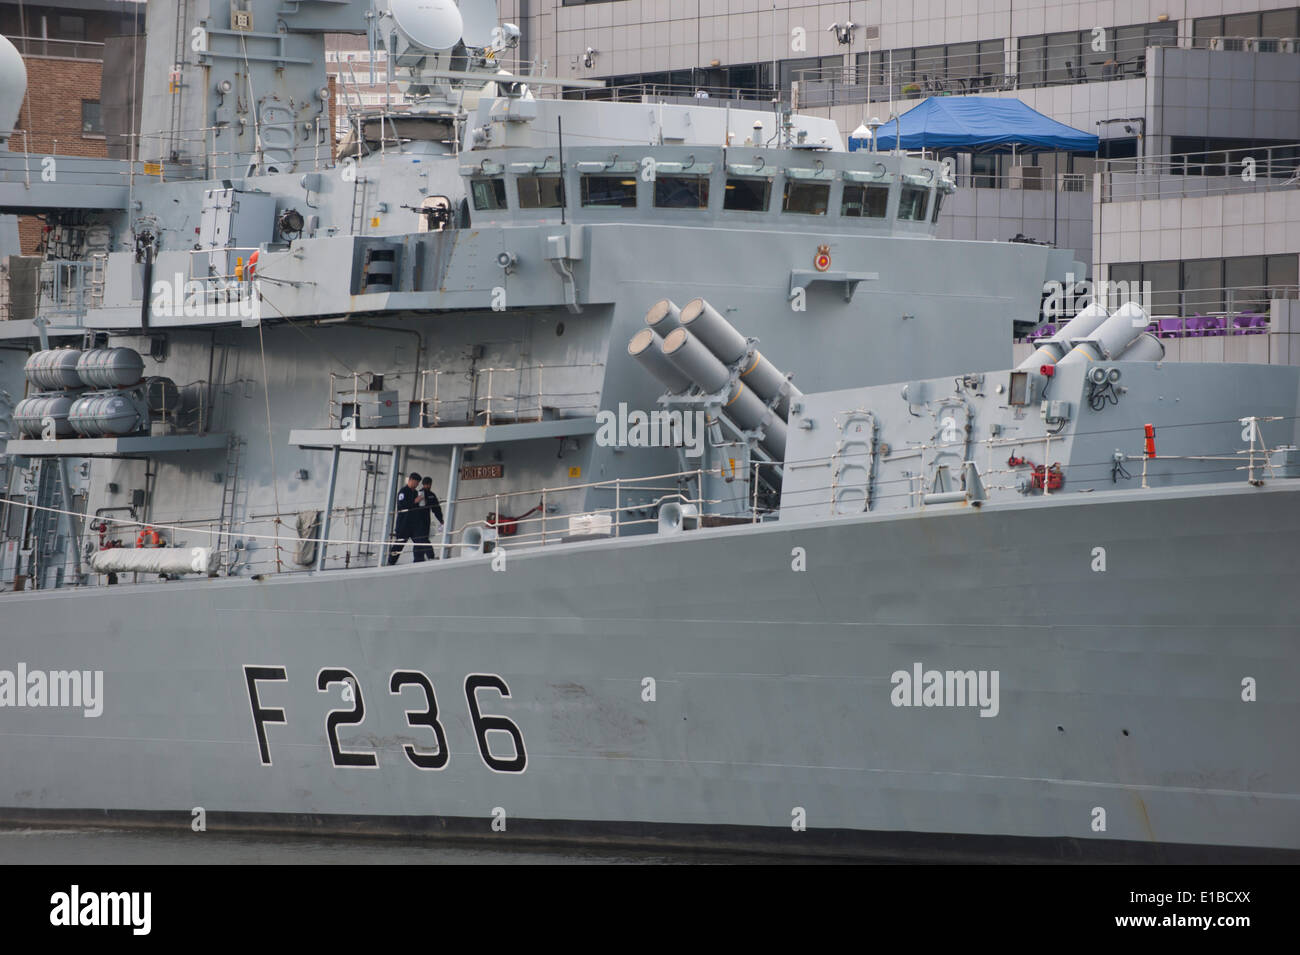 West India Dock, Isle of Dogs, London UK. 29th May 2014. HMS Montrose, Type 23 Duke class Frigate, berths among the offices of Canary Wharf in London as part of the 350th Anniversary of the Royal Marines. Montrose is normally based in Devonport. Credit:  Malcolm Park editorial/Alamy Live News Stock Photo